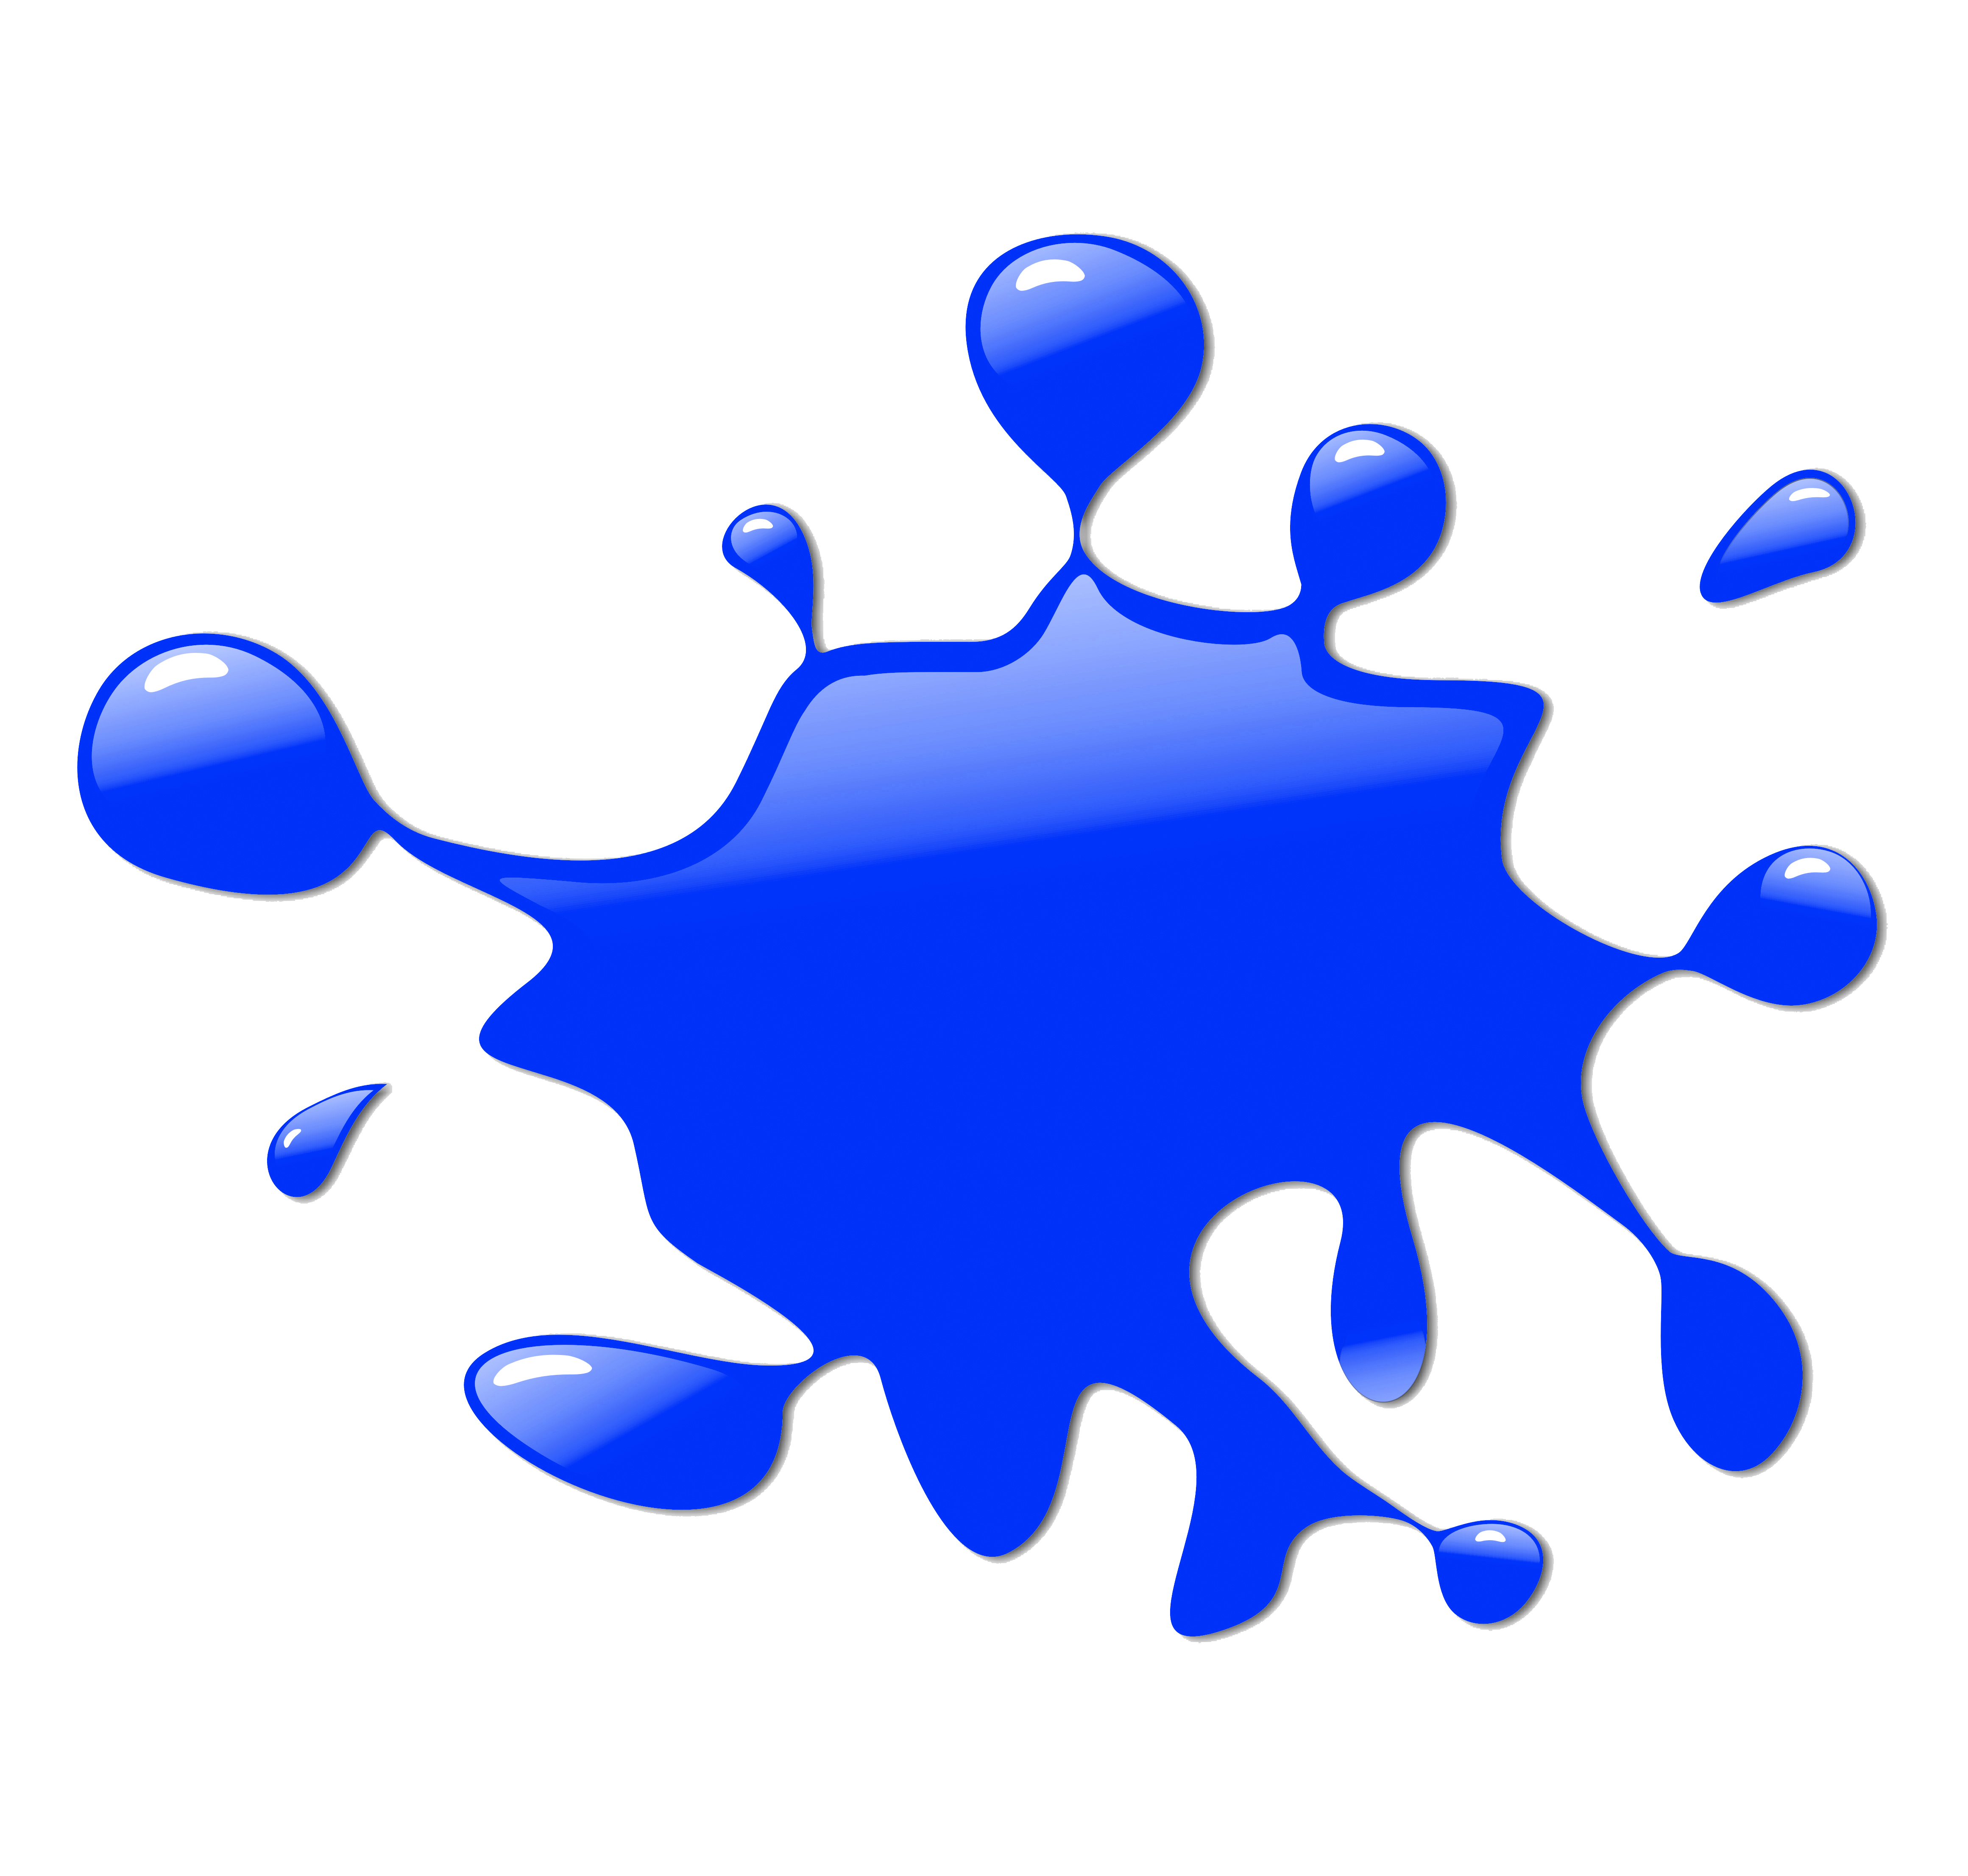 blue paint splatter png